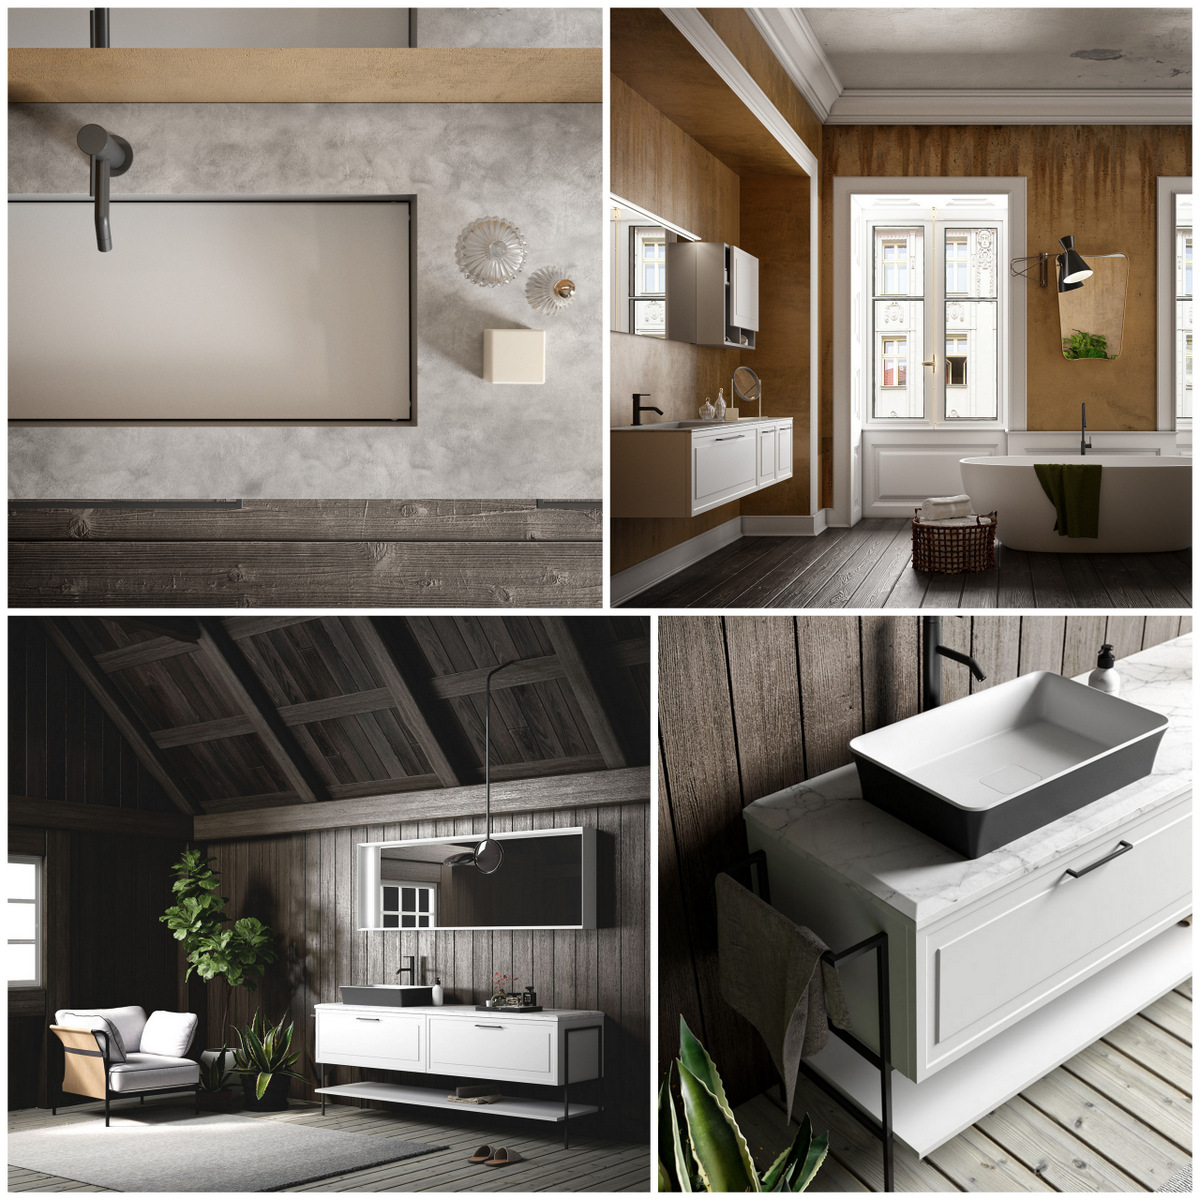 First Pictures Of The New Puntotre S Bathroom Furniture